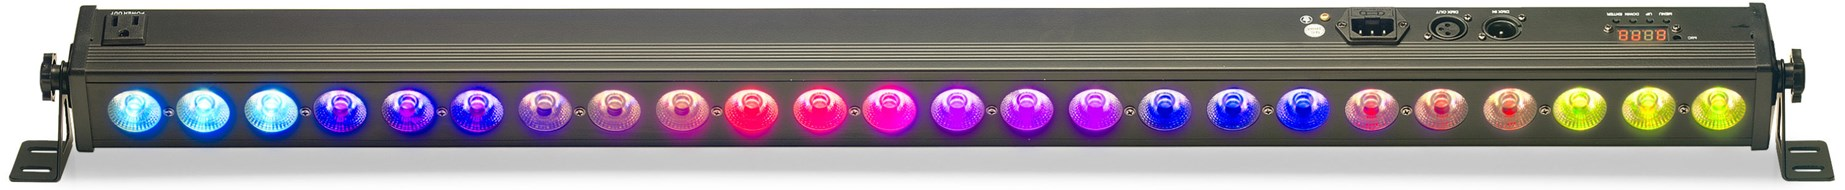 Stagg Architectural colour bar with 24 x 4-watt (4 in 1) RGBW LED